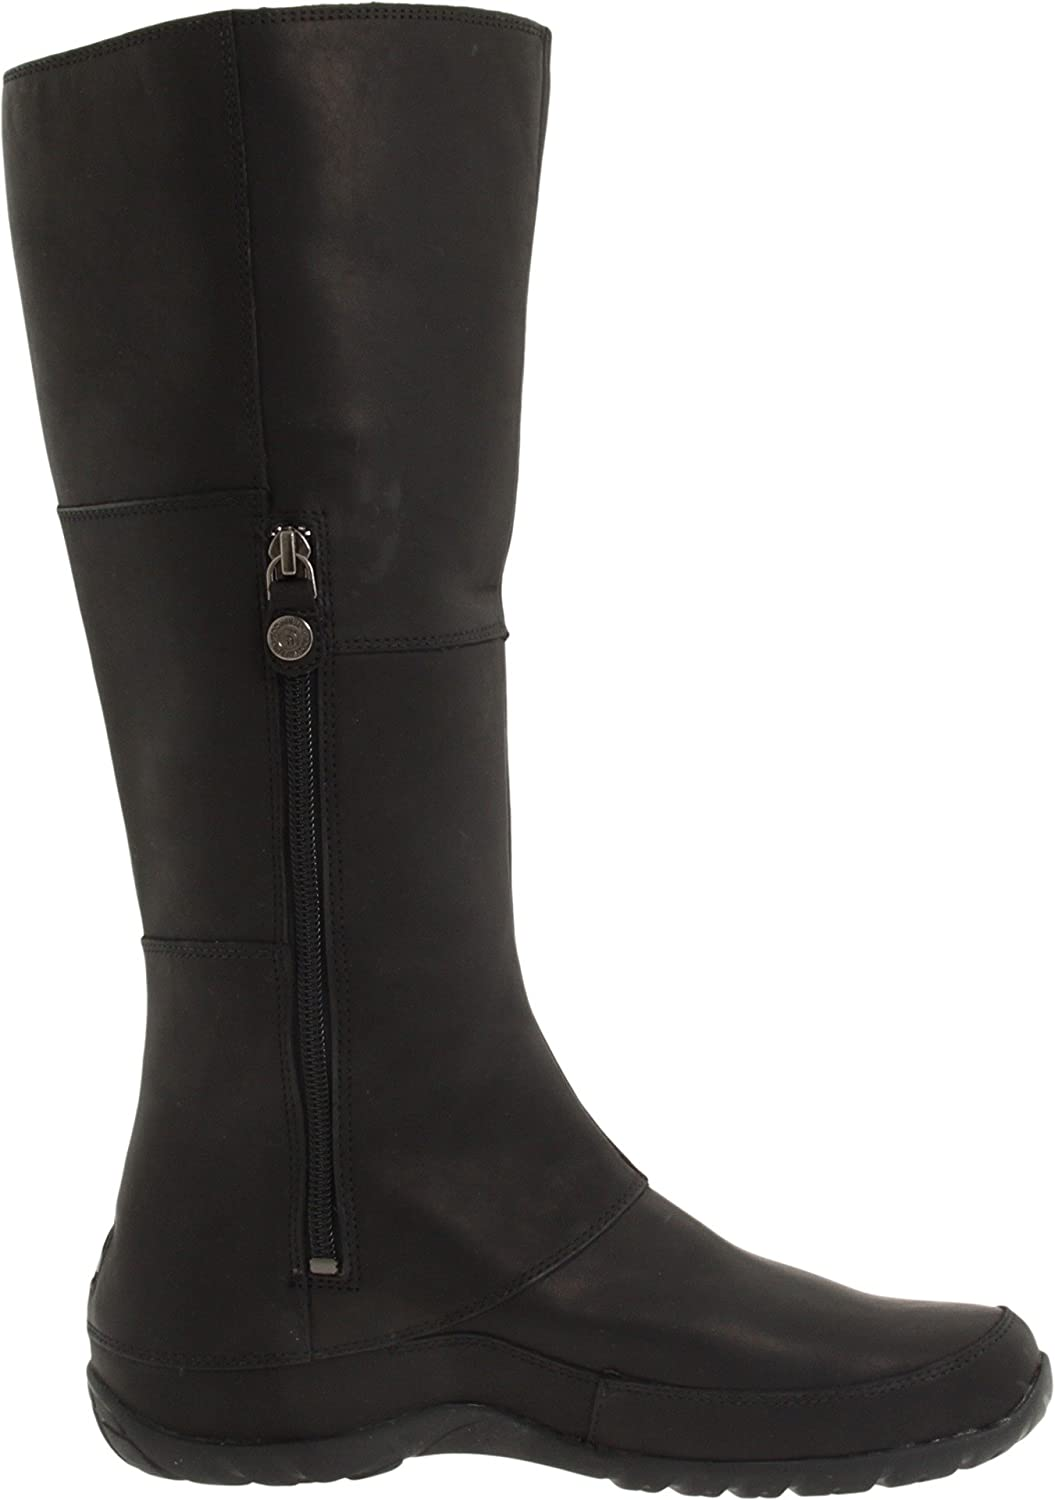 bca4ee58b Amazon.com | The North Face Womens Camryn Boot Black Size 9 | Boots